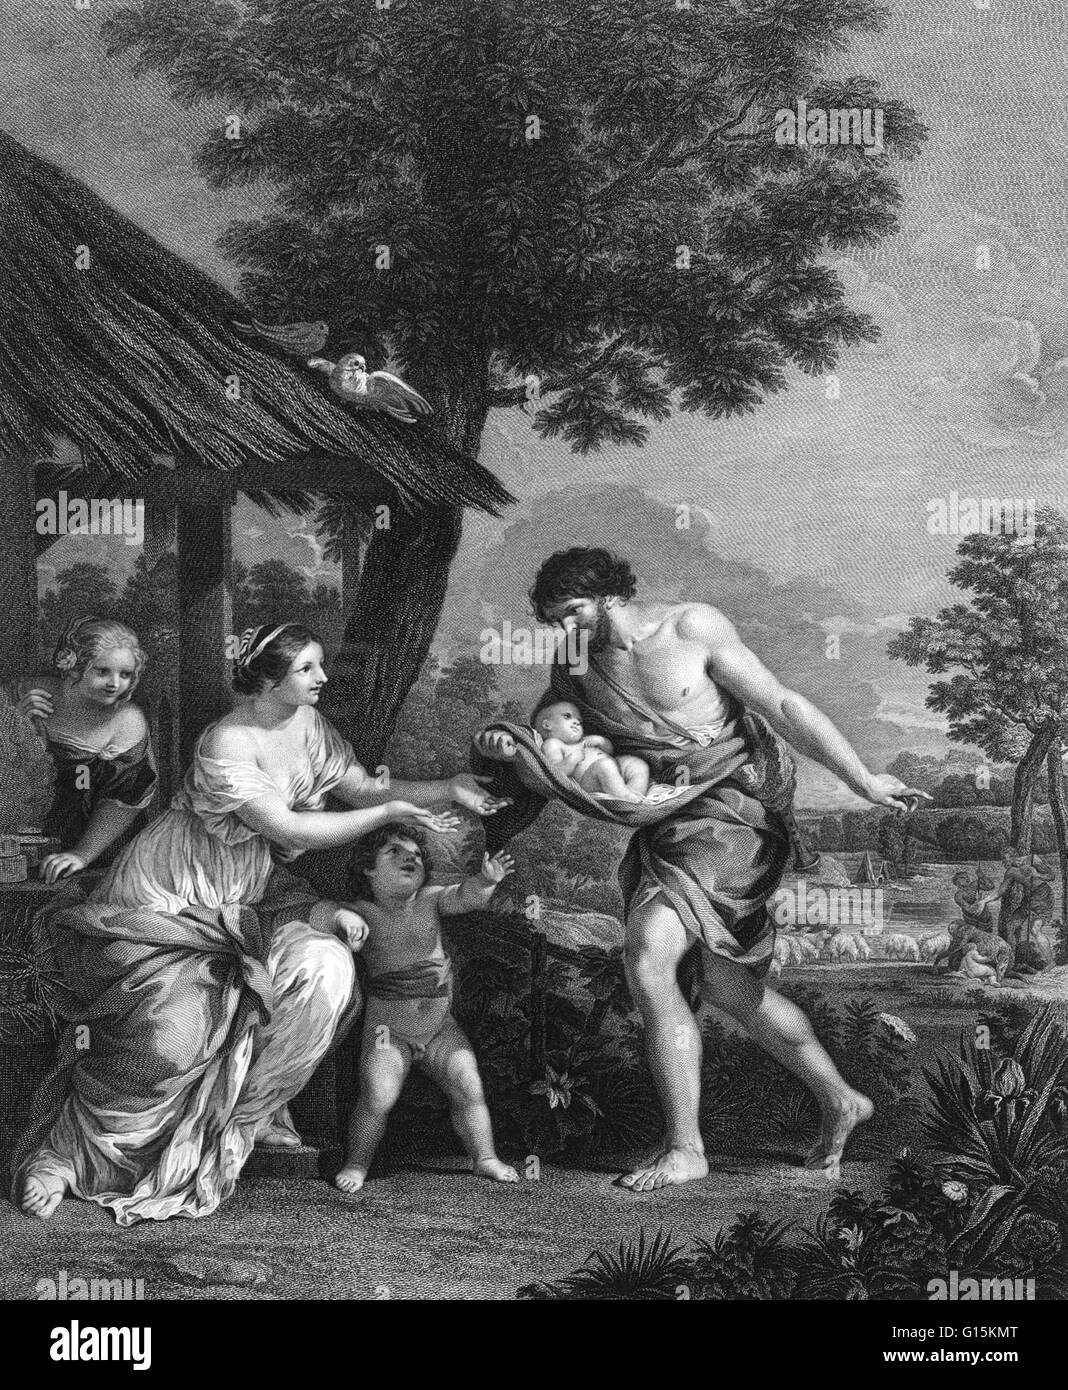 the ancient roman mythology of romulus and remus essay The roman mythology came into existence 1000 years later of the ancient   remus and romulus whose parents were mars, roman's god of war  overall,  the greek and roman mythologies are the religions of the ancient.